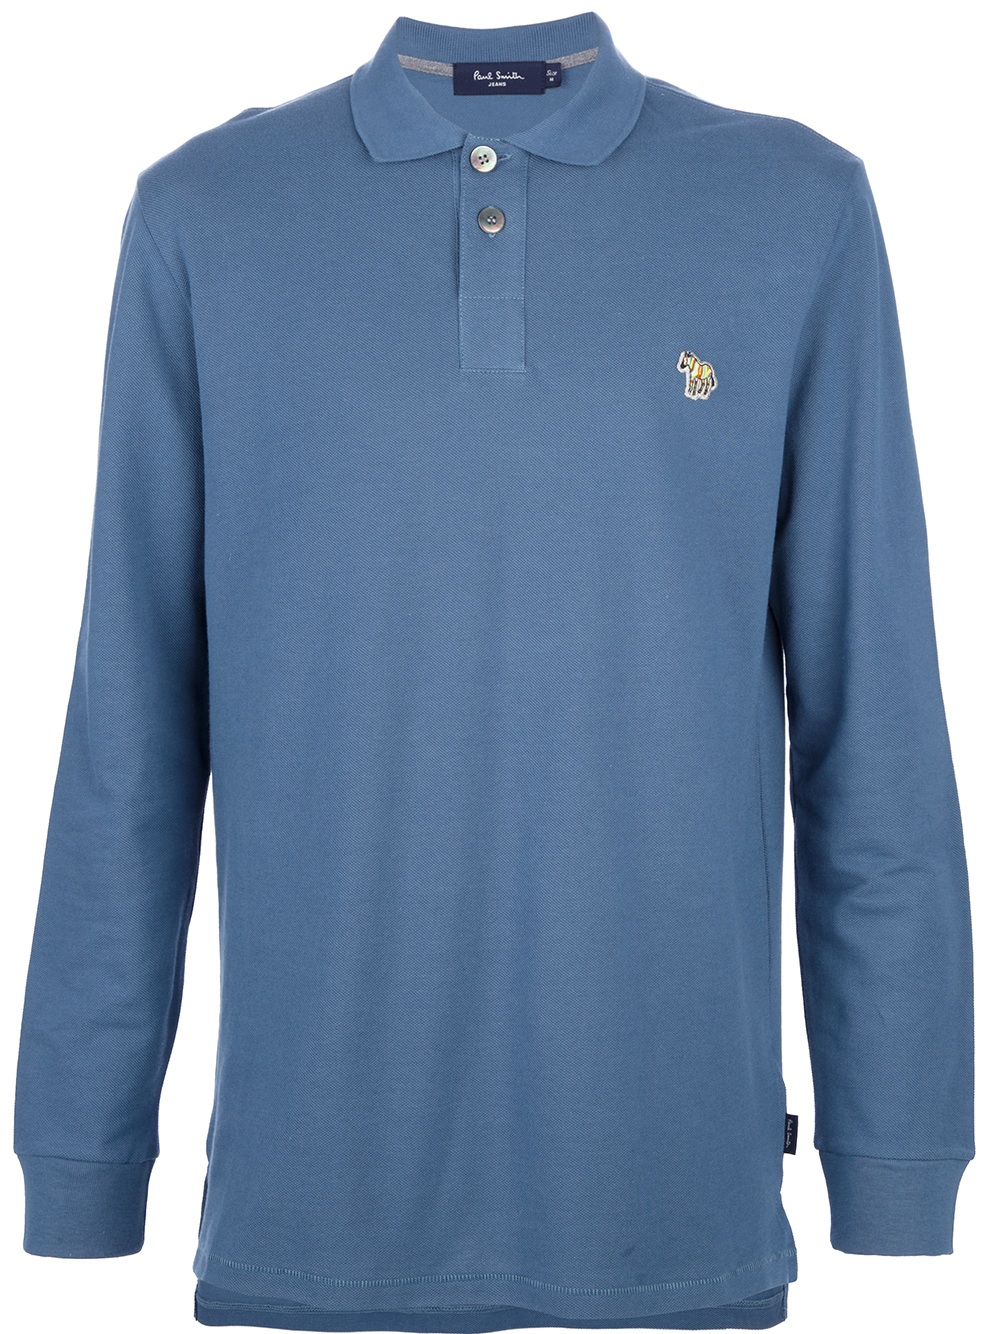 Paul Smith Long Sleeved Logo Polo Shirt In Blue For Men Lyst